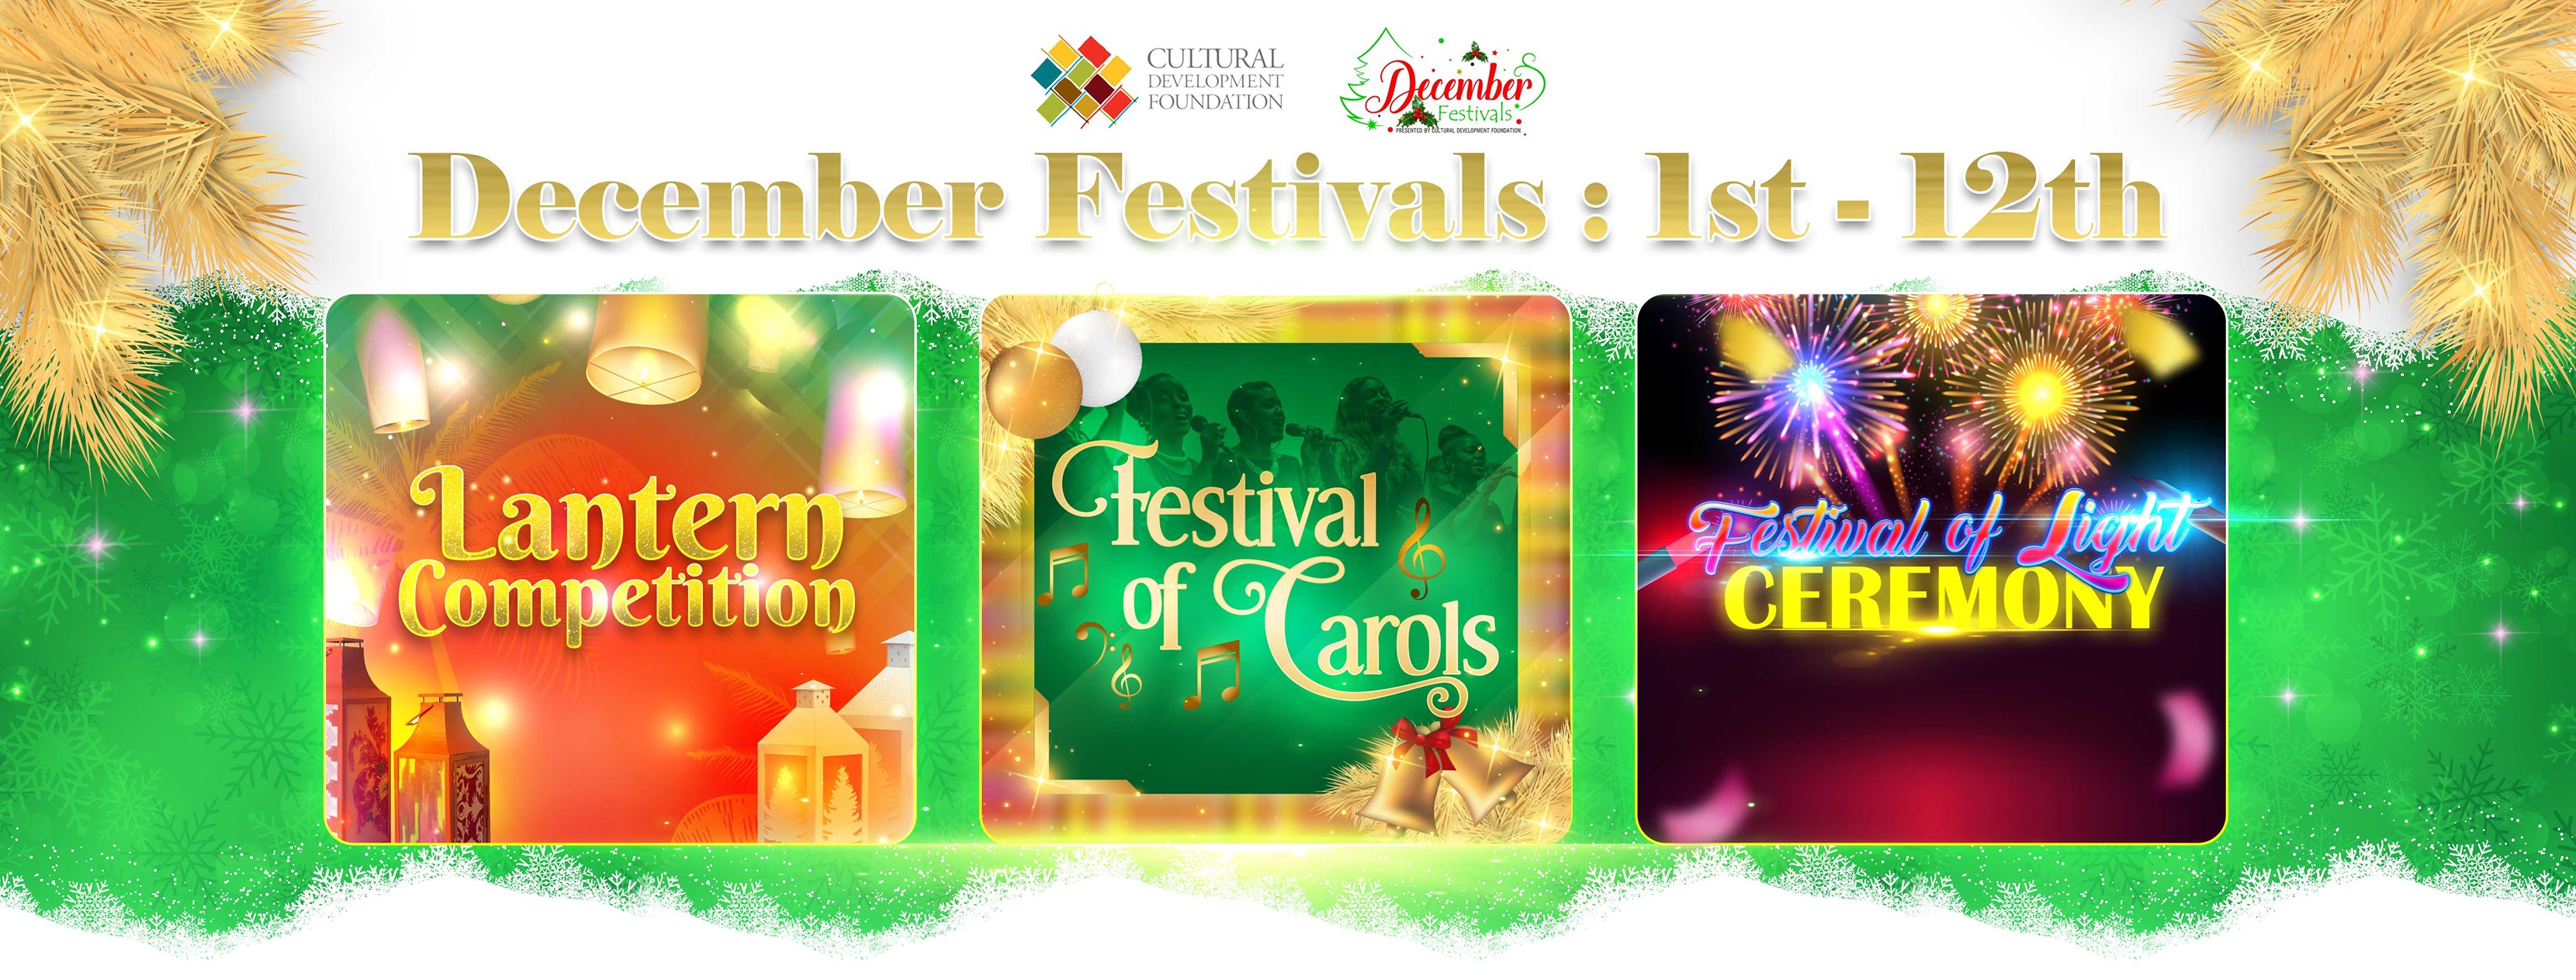 December Festivals - Lantern Competition, Festival Of Carols, Festival of Light and Renewal